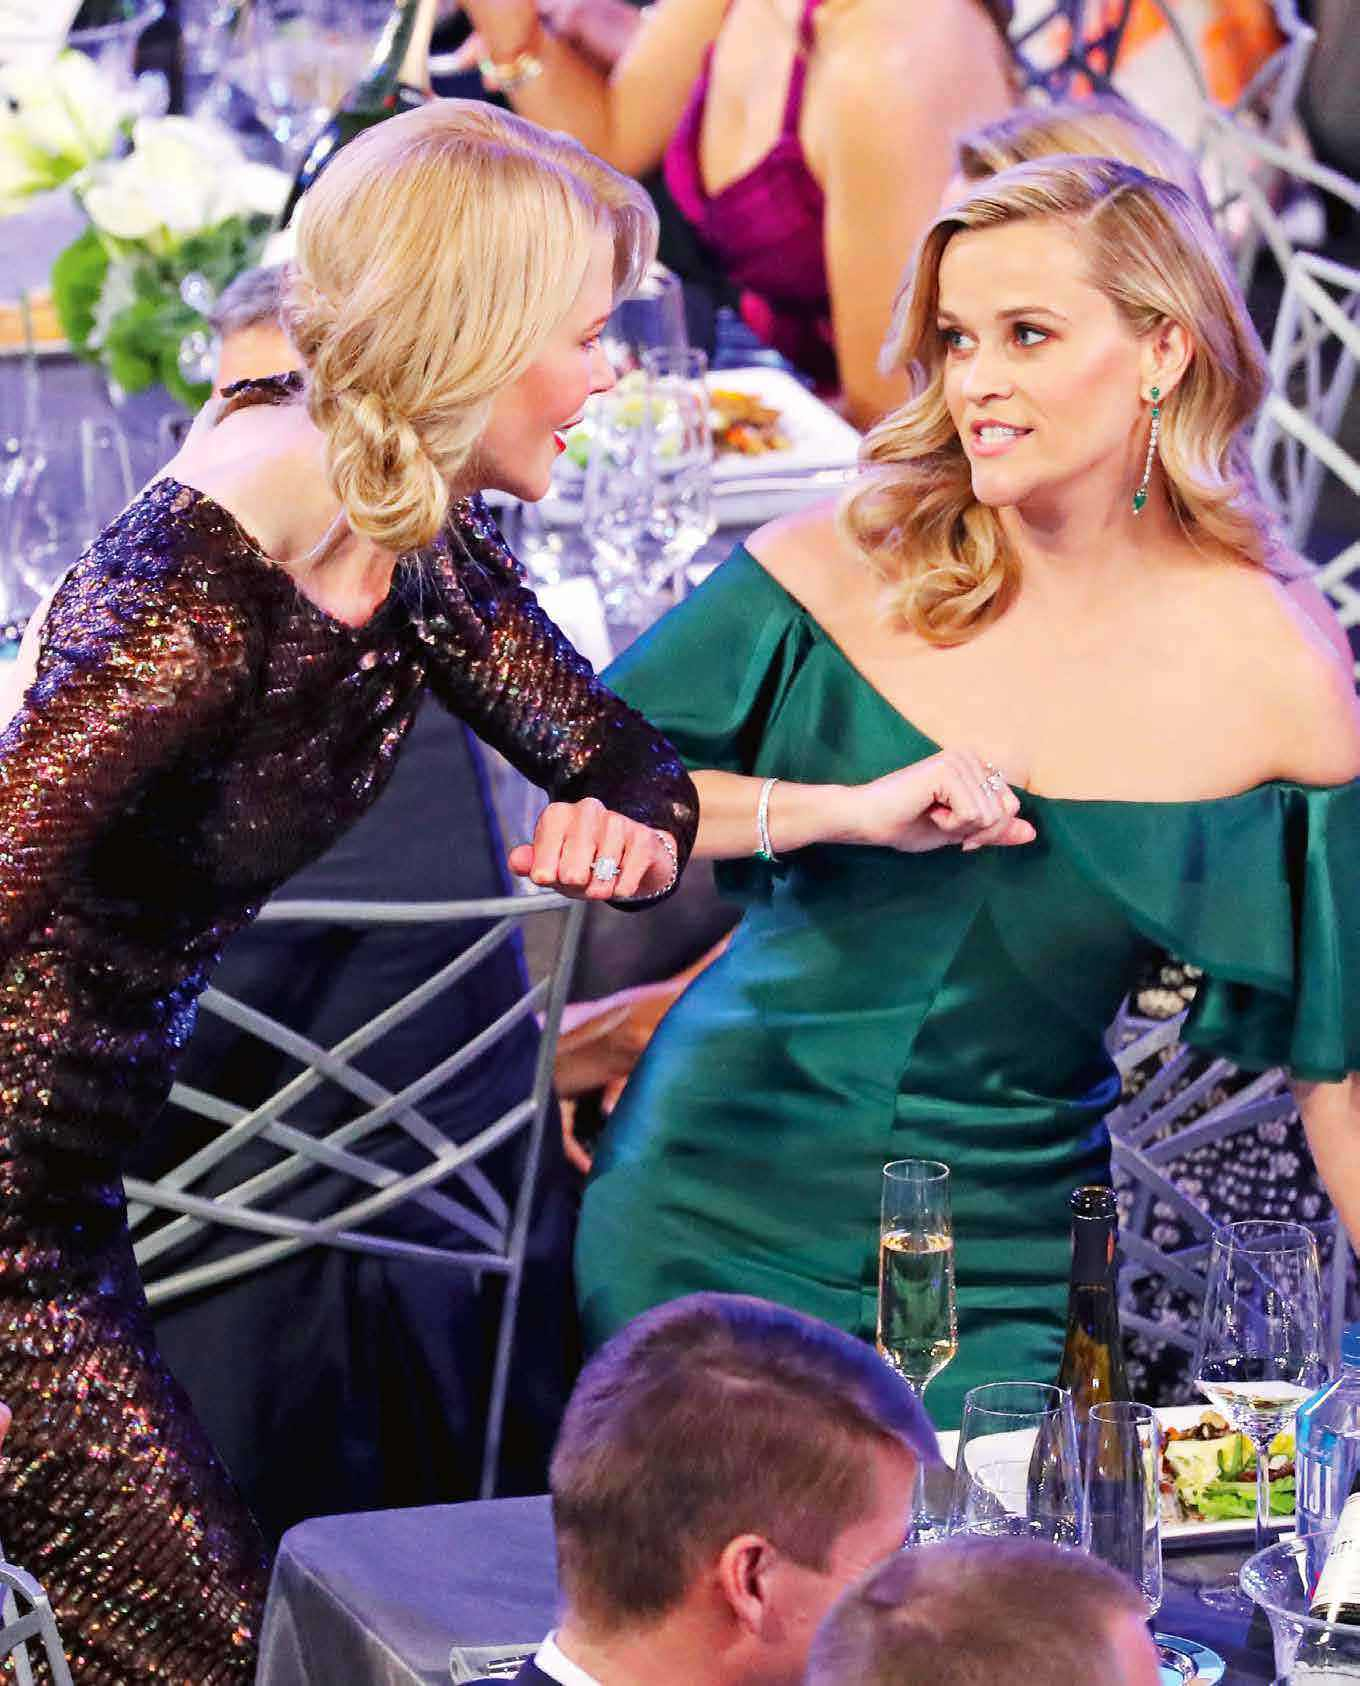 Nicole Vs Reese - Backstage Blow-Up!